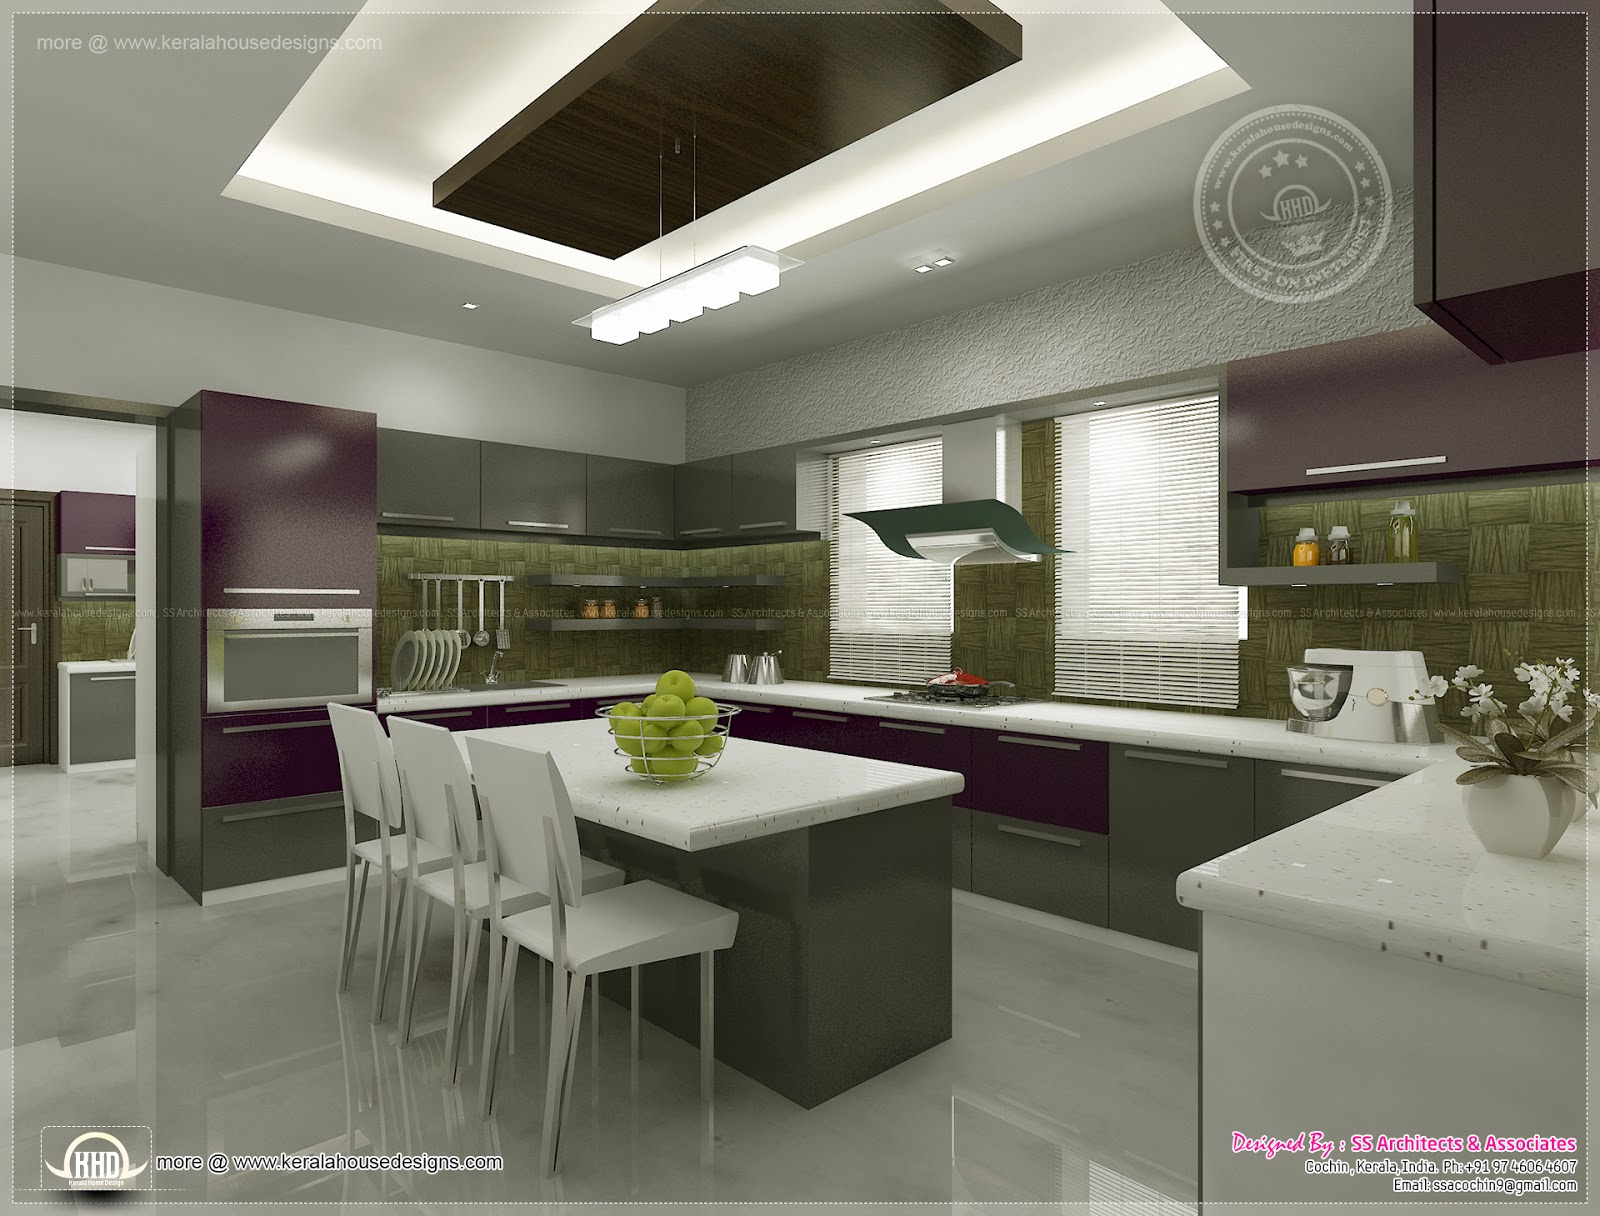 Interior design for 1 room kitchen in india for Interior design of kitchen room in india